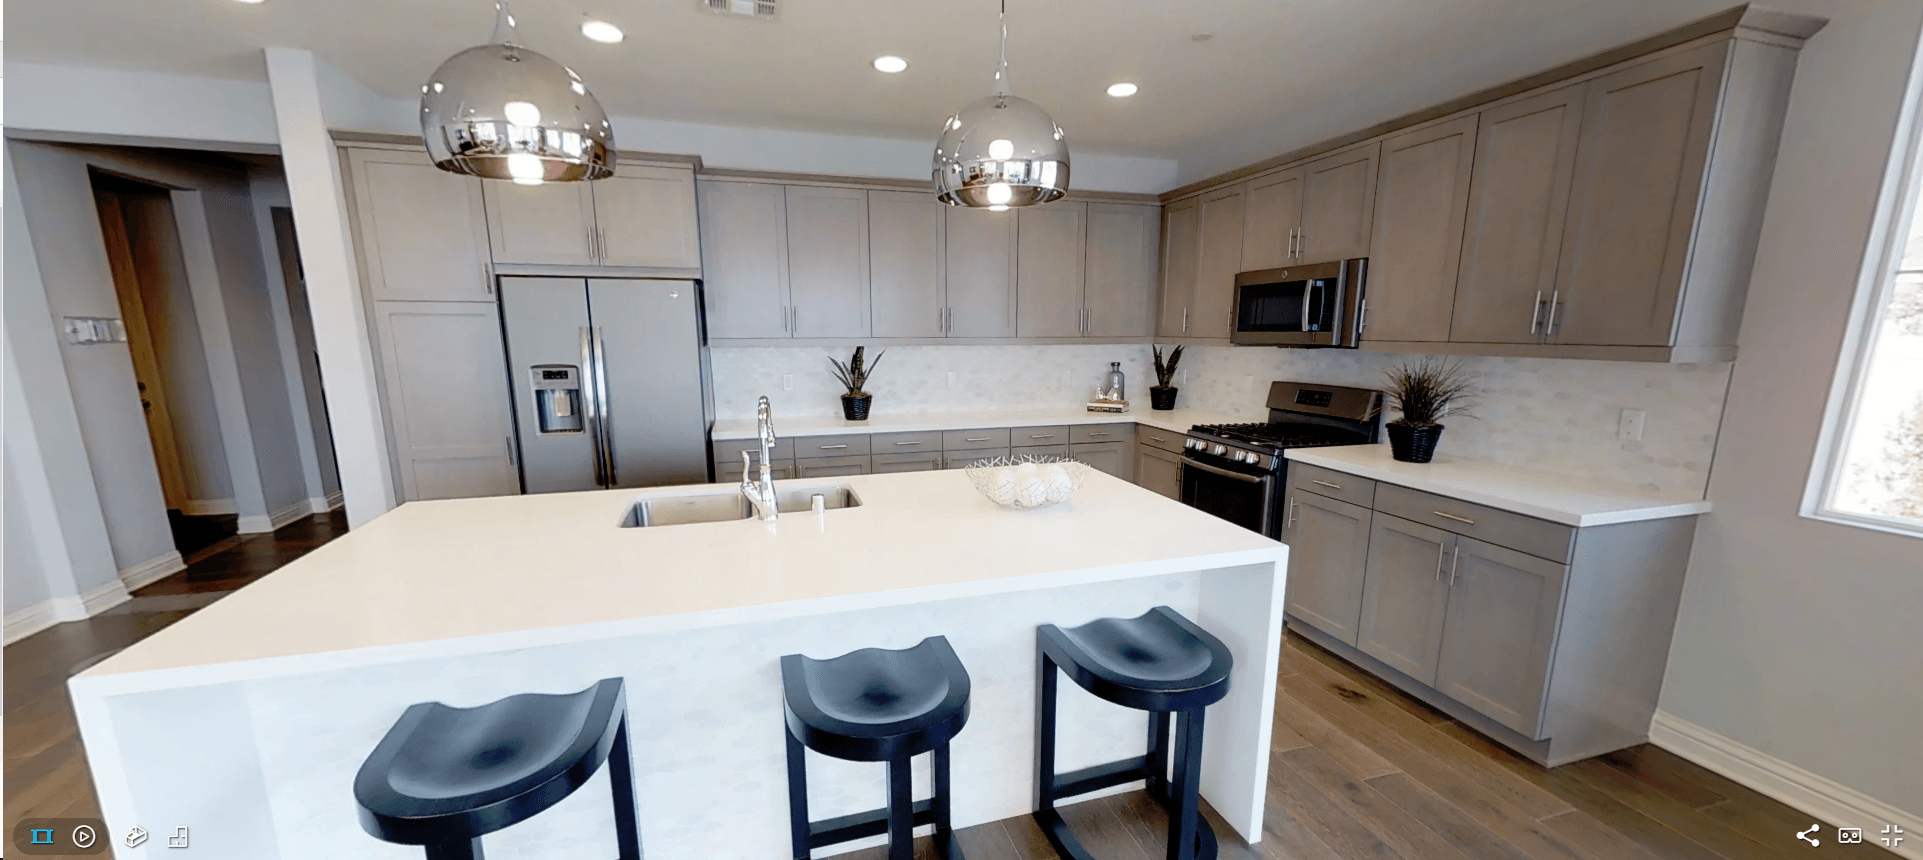 Kitchen featured in the Iron Horse Residence 1 By Comstock Homes in Ventura, CA